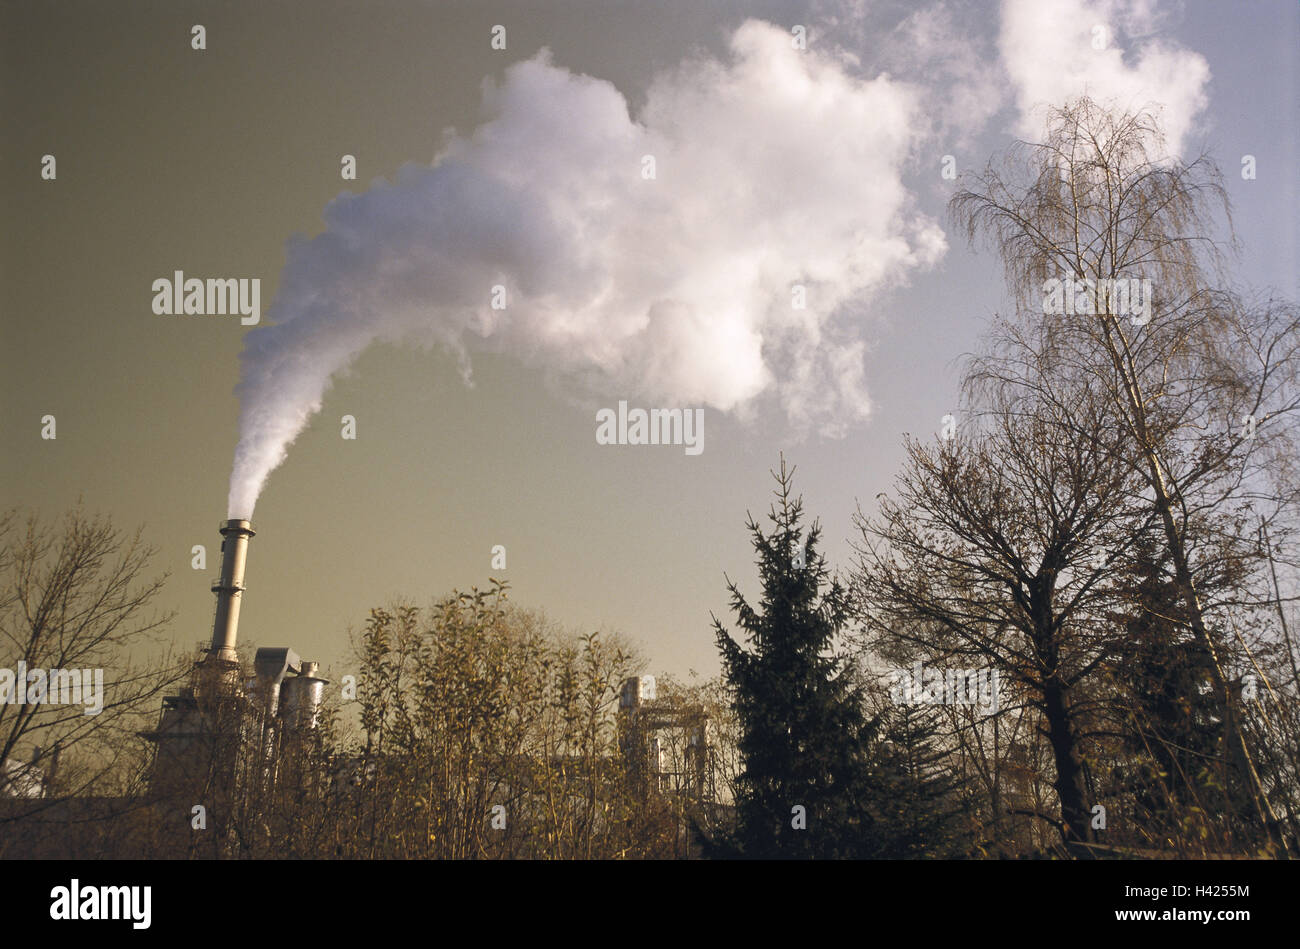 Wood, view, manufacturing plant, detail, chimney, smoke, b/w, factory, factory chimney, Eating, Chimney, smoke, - Stock Image